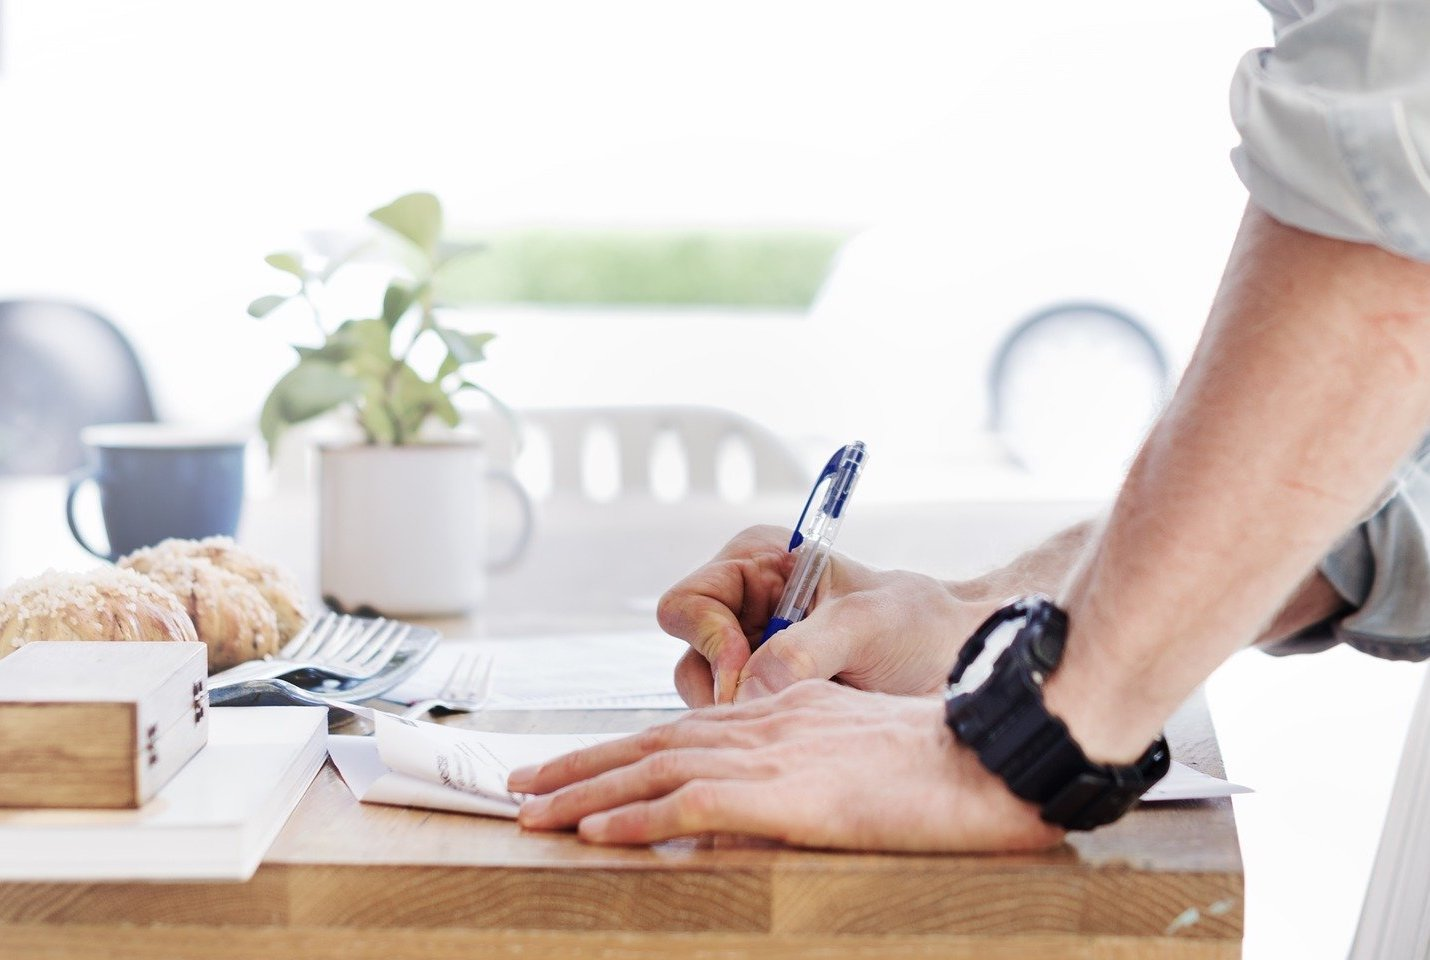 A home seller writes on a contract with a pen at their table.